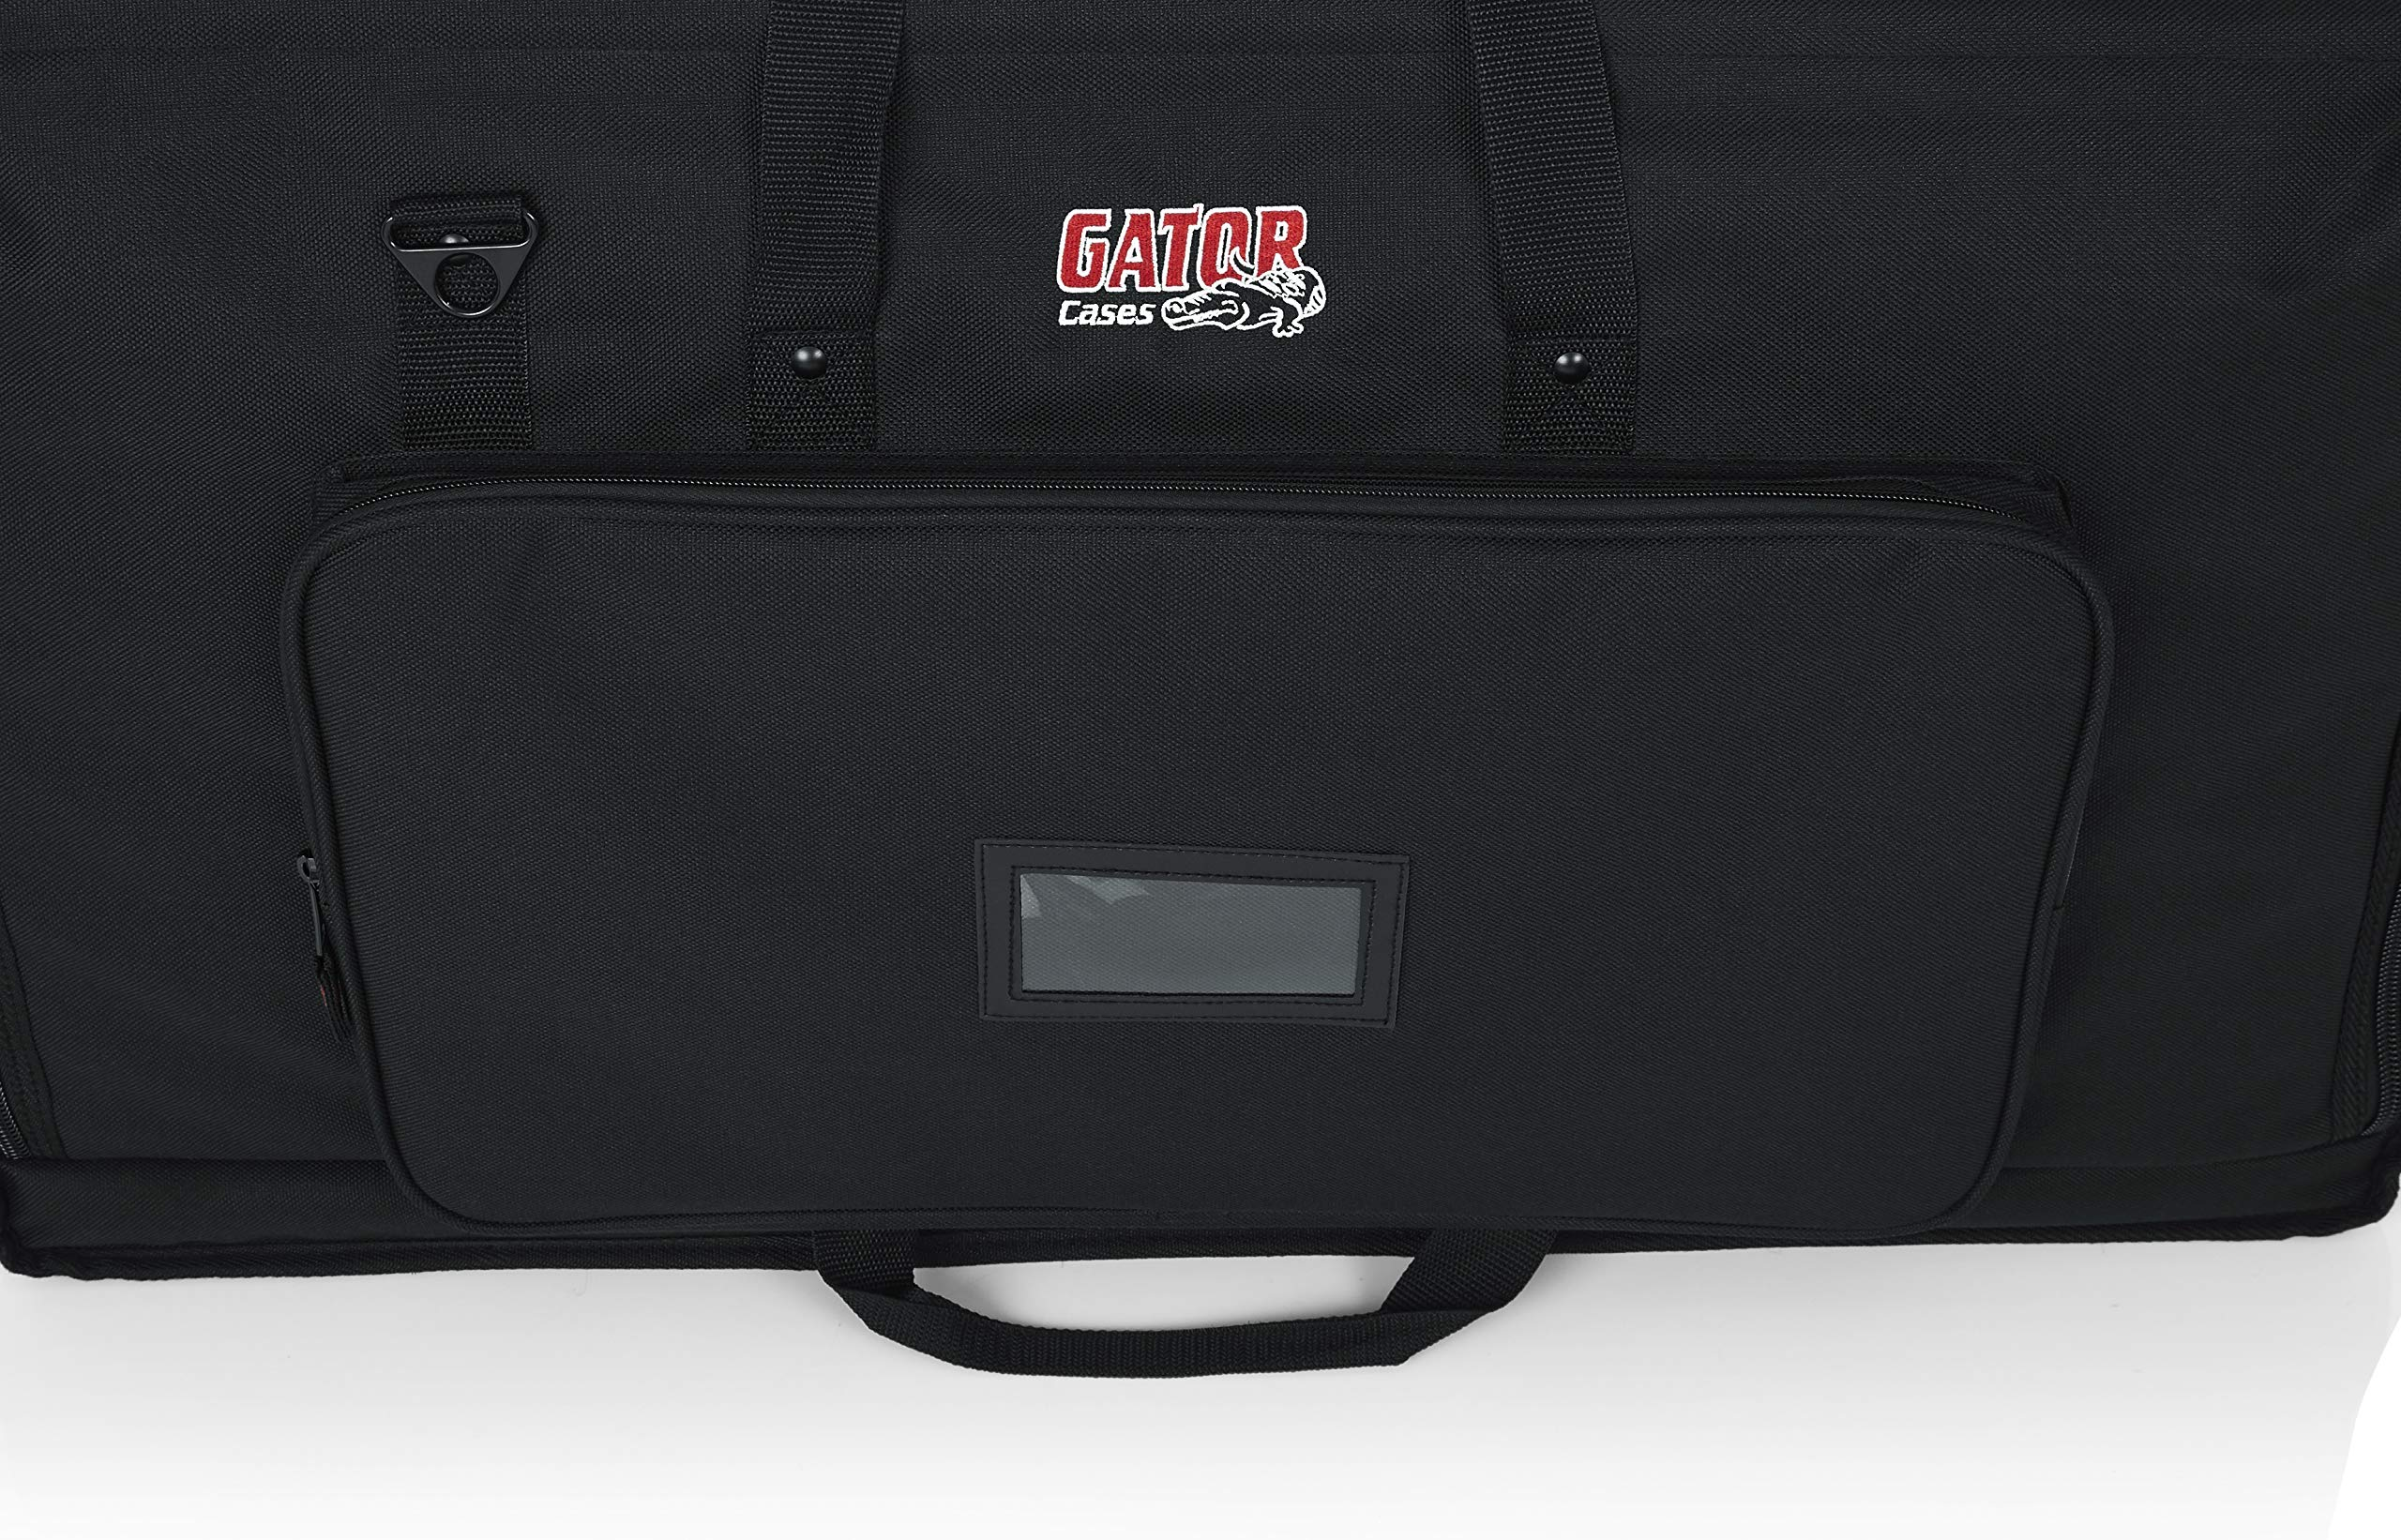 Gator Cases Padded Nylon Dual Carry Tote Bag for Transporting (2) LCD Screens, Monitors and TVs Between 27'' - 32''; (G-LCD-TOTE-MDX2) by Gator (Image #6)